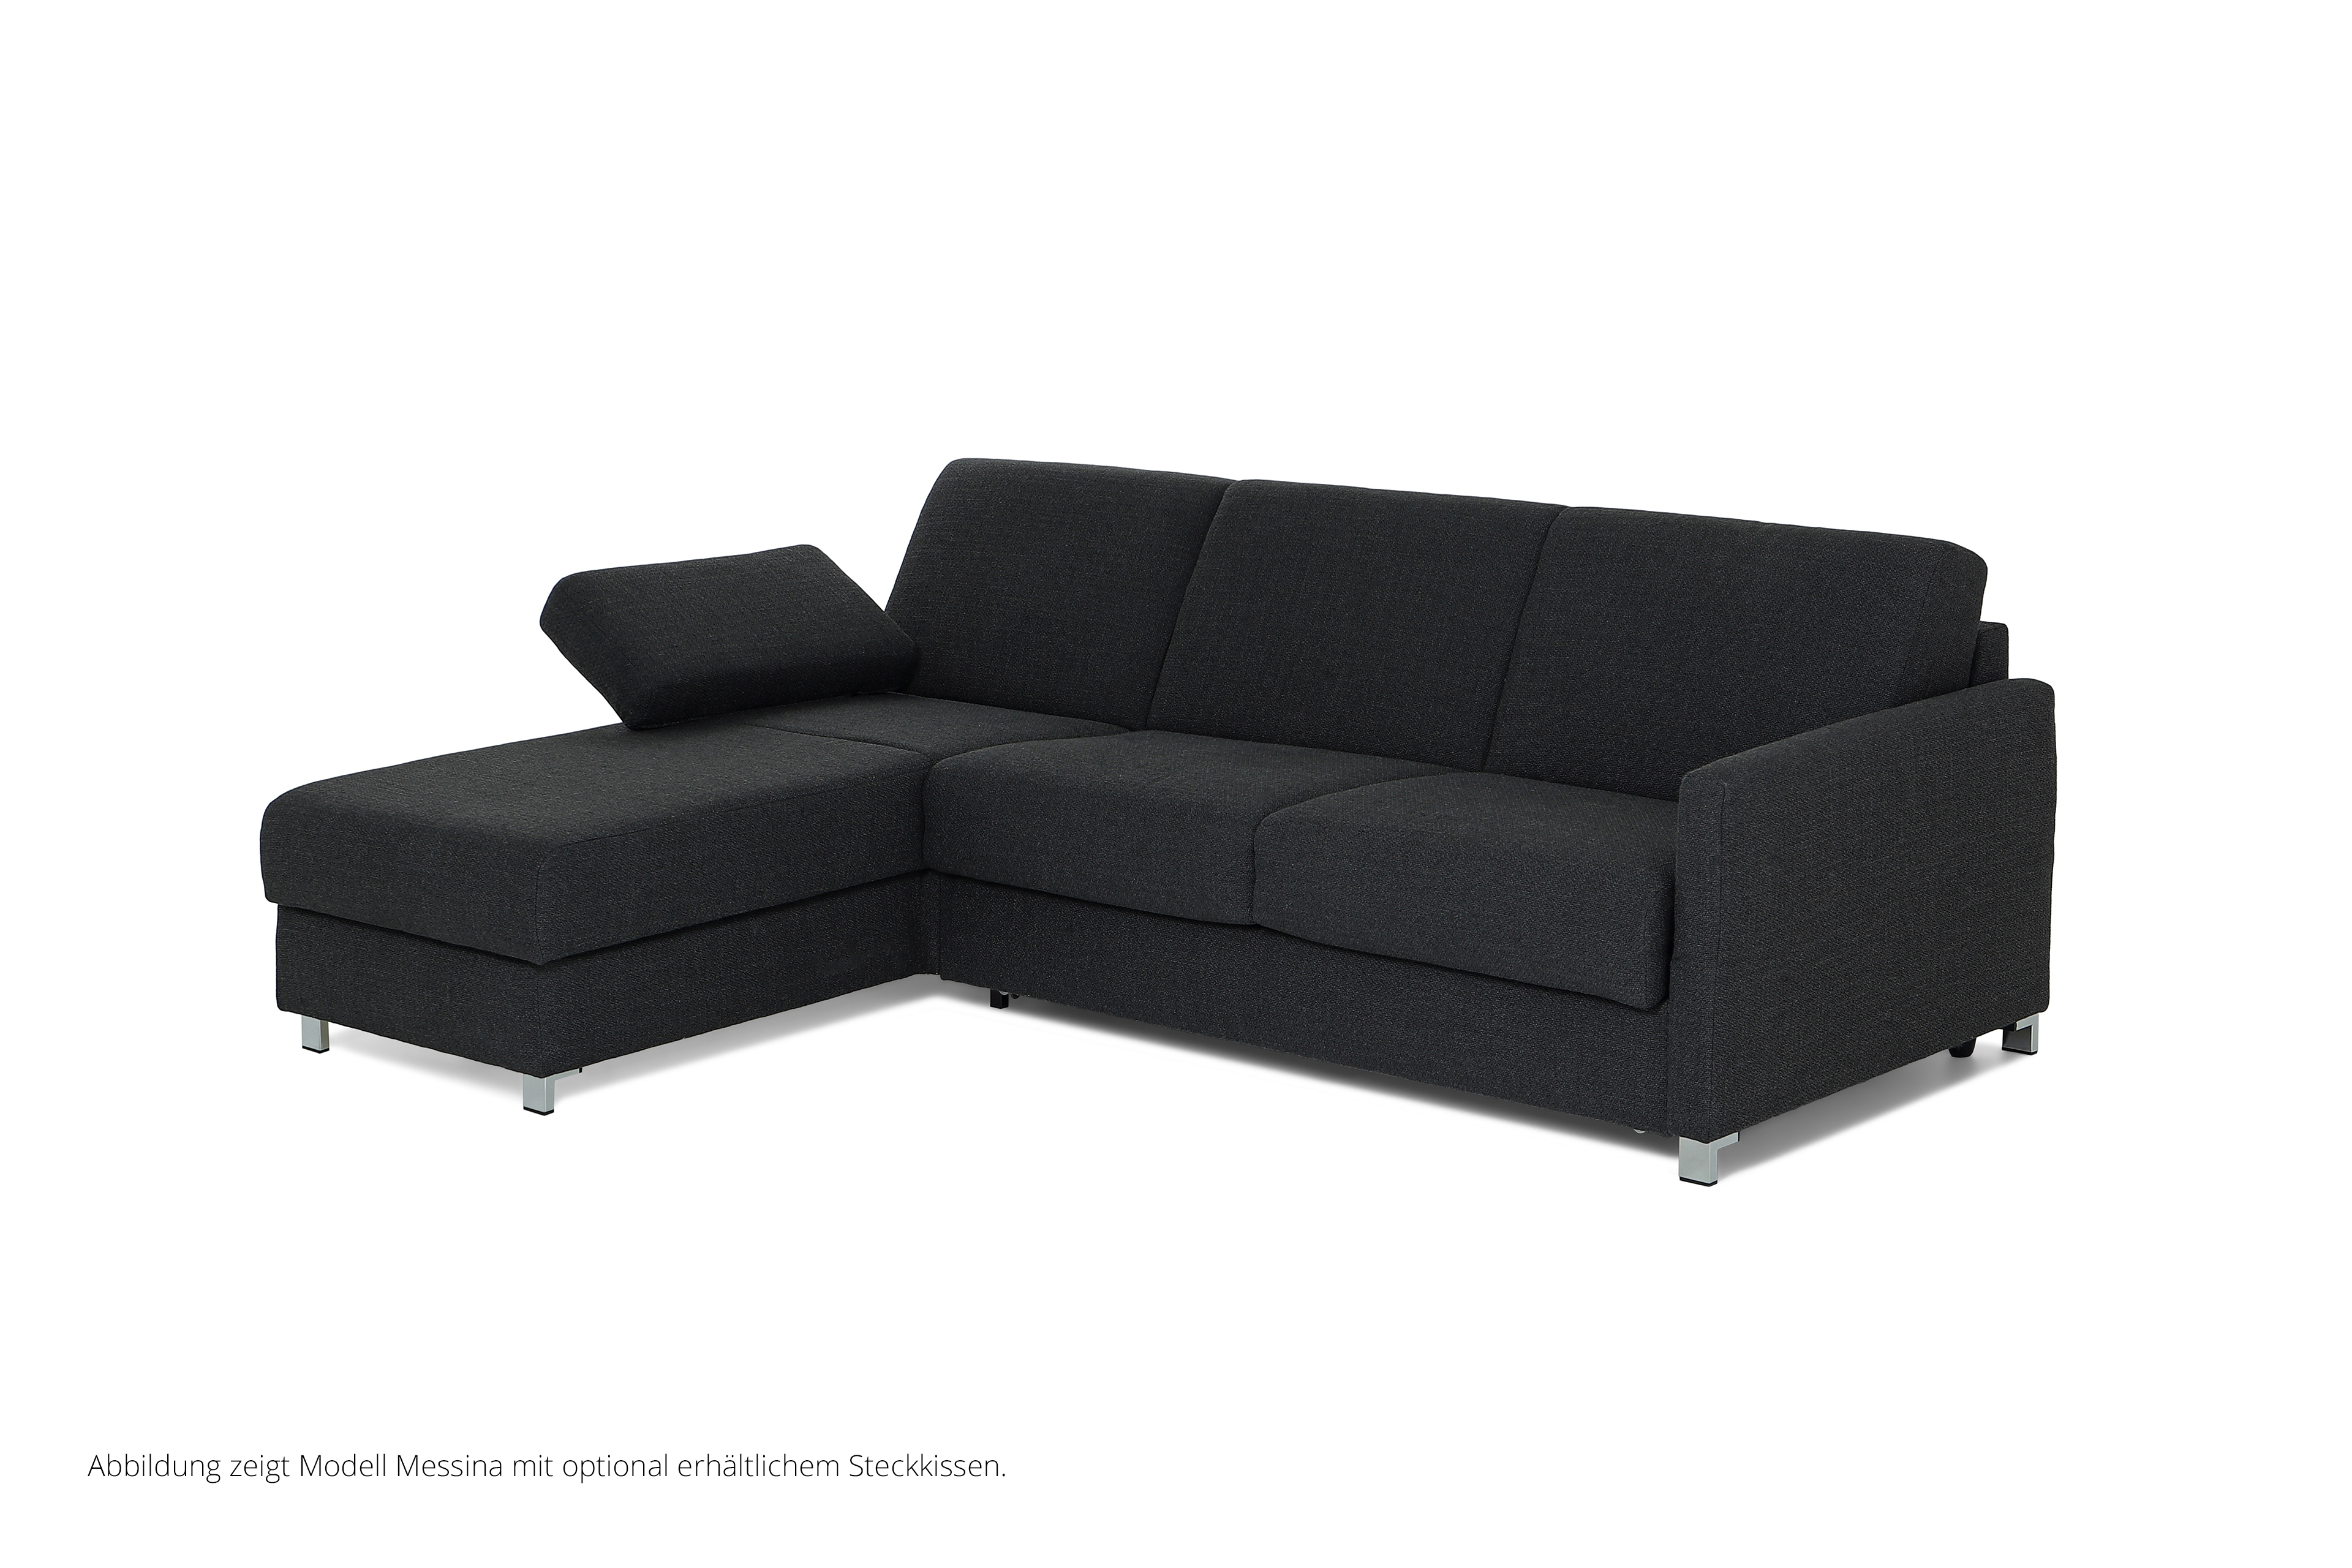 schlafsofa messina grau von bali polsterm bel m bel letz ihr online shop. Black Bedroom Furniture Sets. Home Design Ideas